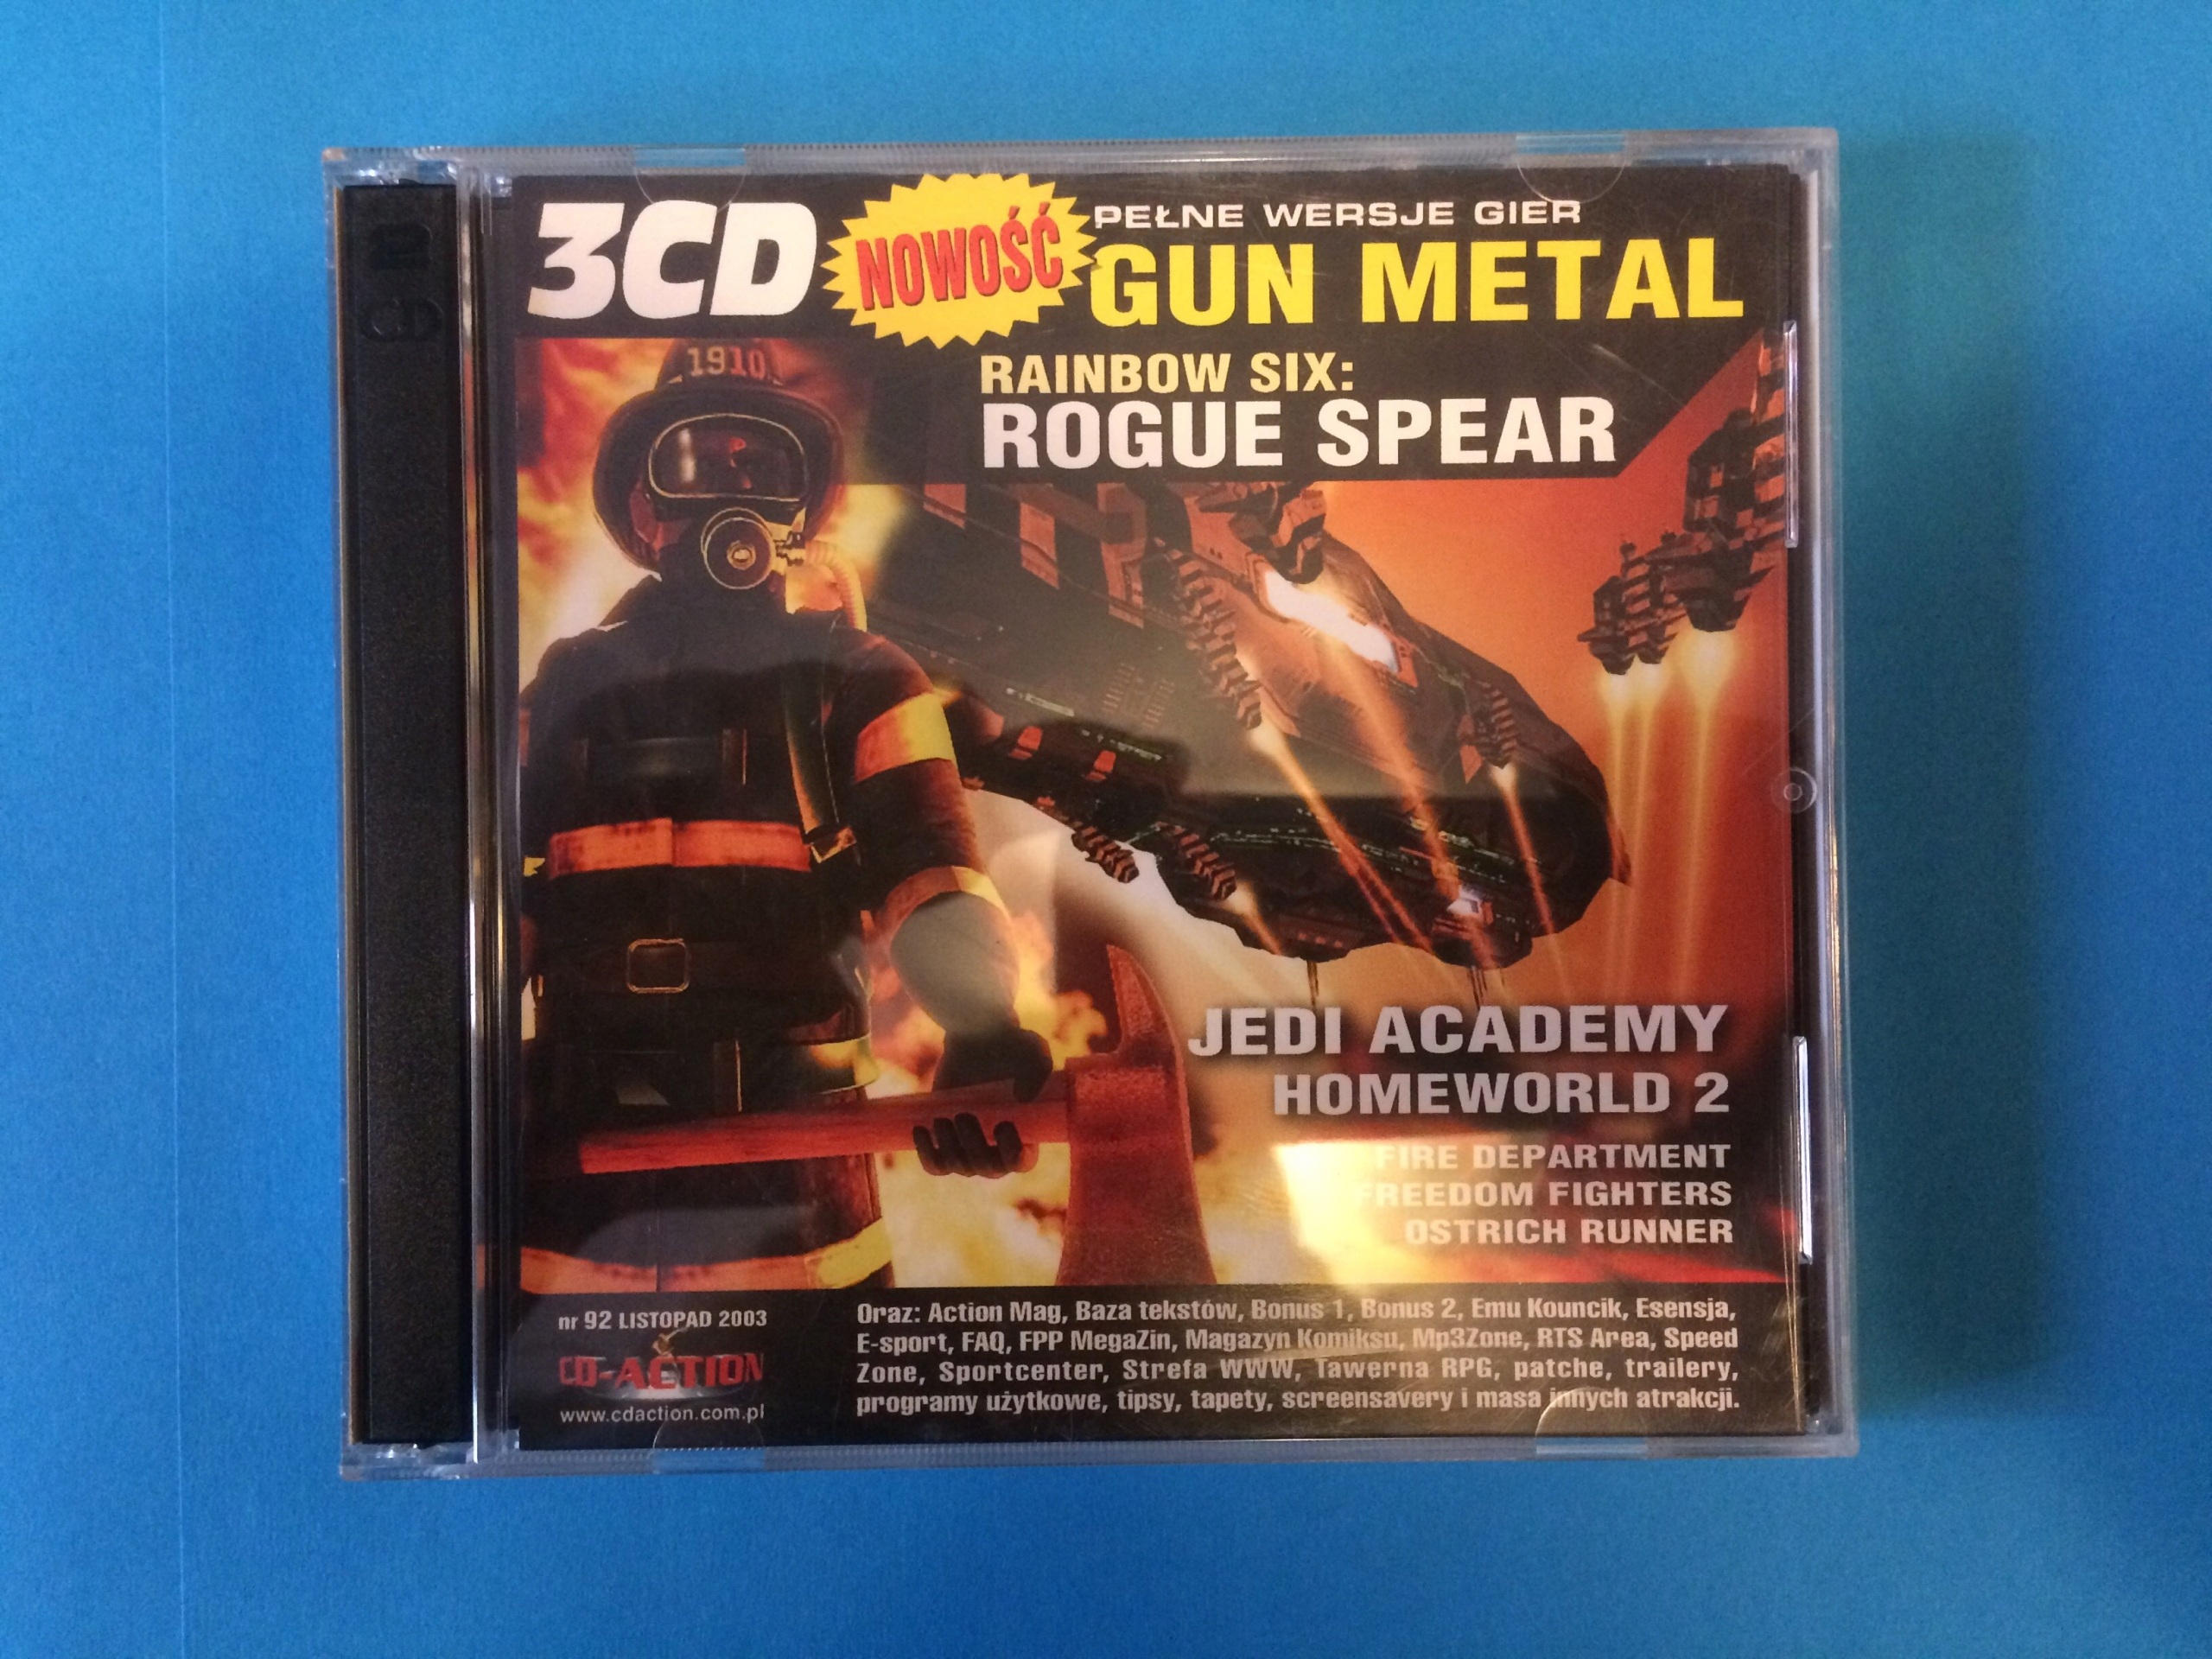 CD-ACTION 92: Gun Metal